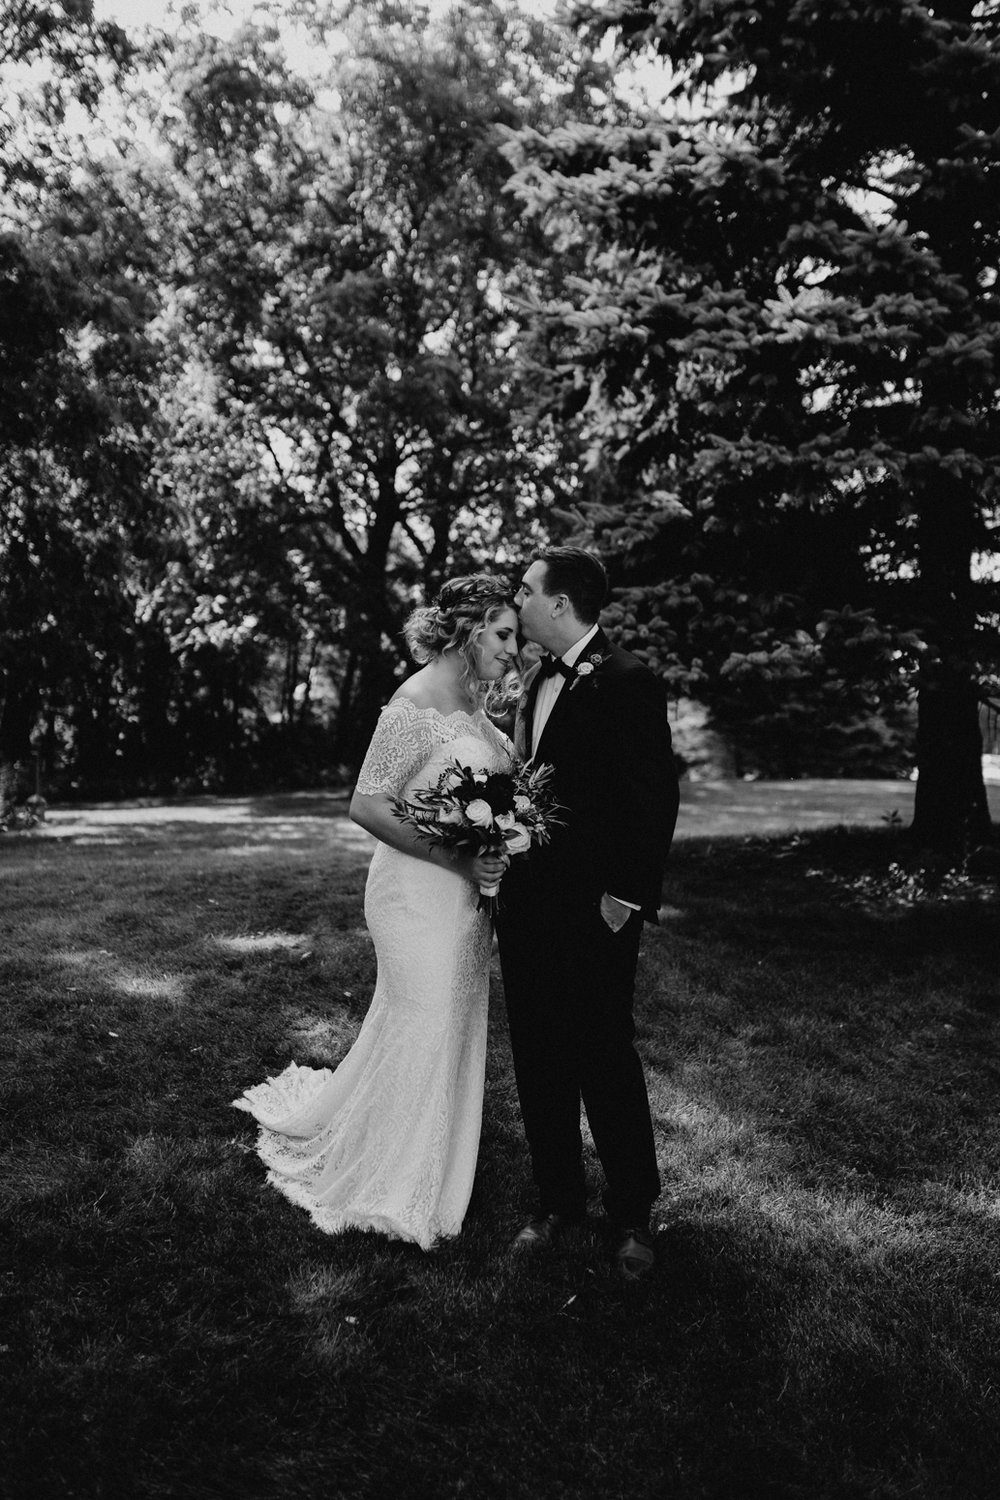 Rochester, NY Wedding Photographer (73 of 149).jpg